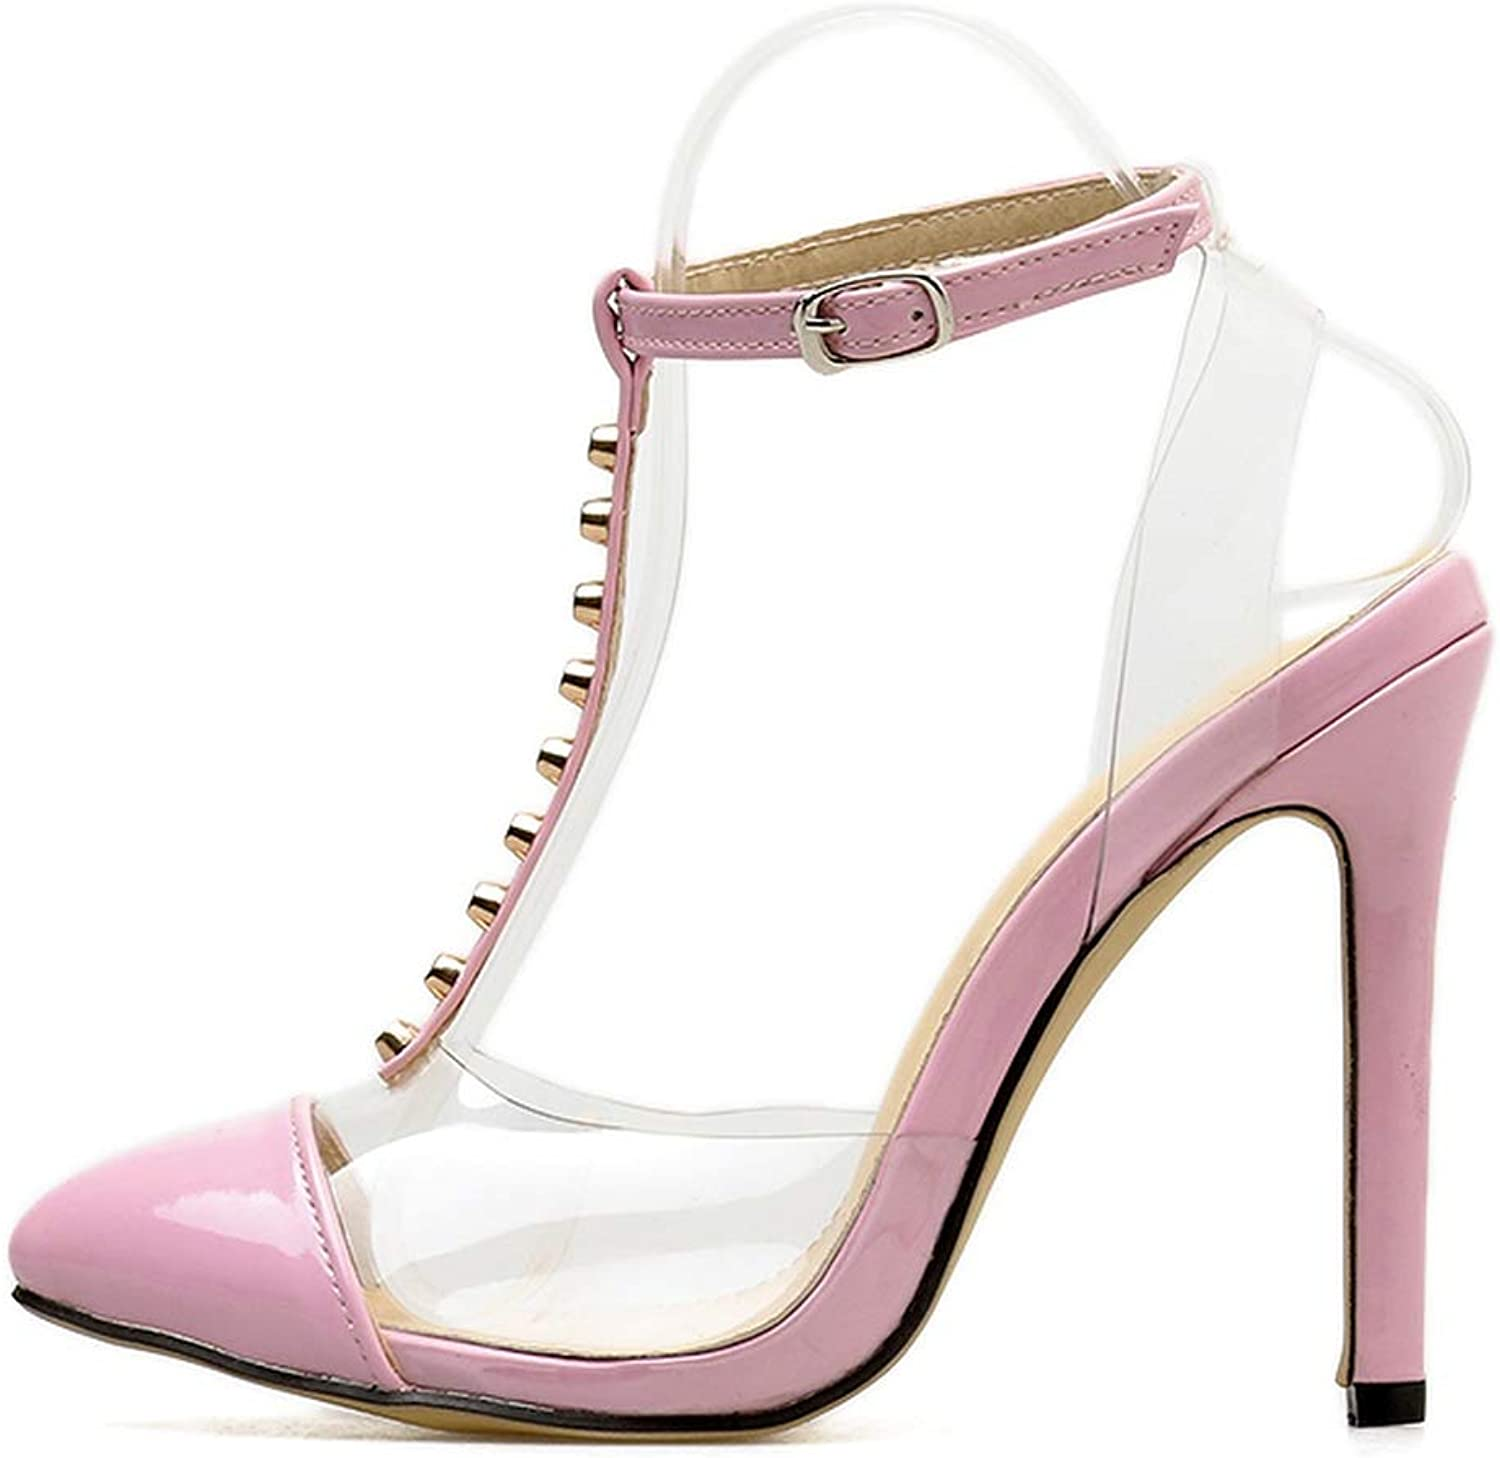 Little SU T Strap High Heels Sandal Pump with Ankle Strap Rivet Pointed Toe Buckle Strap Lady shoes